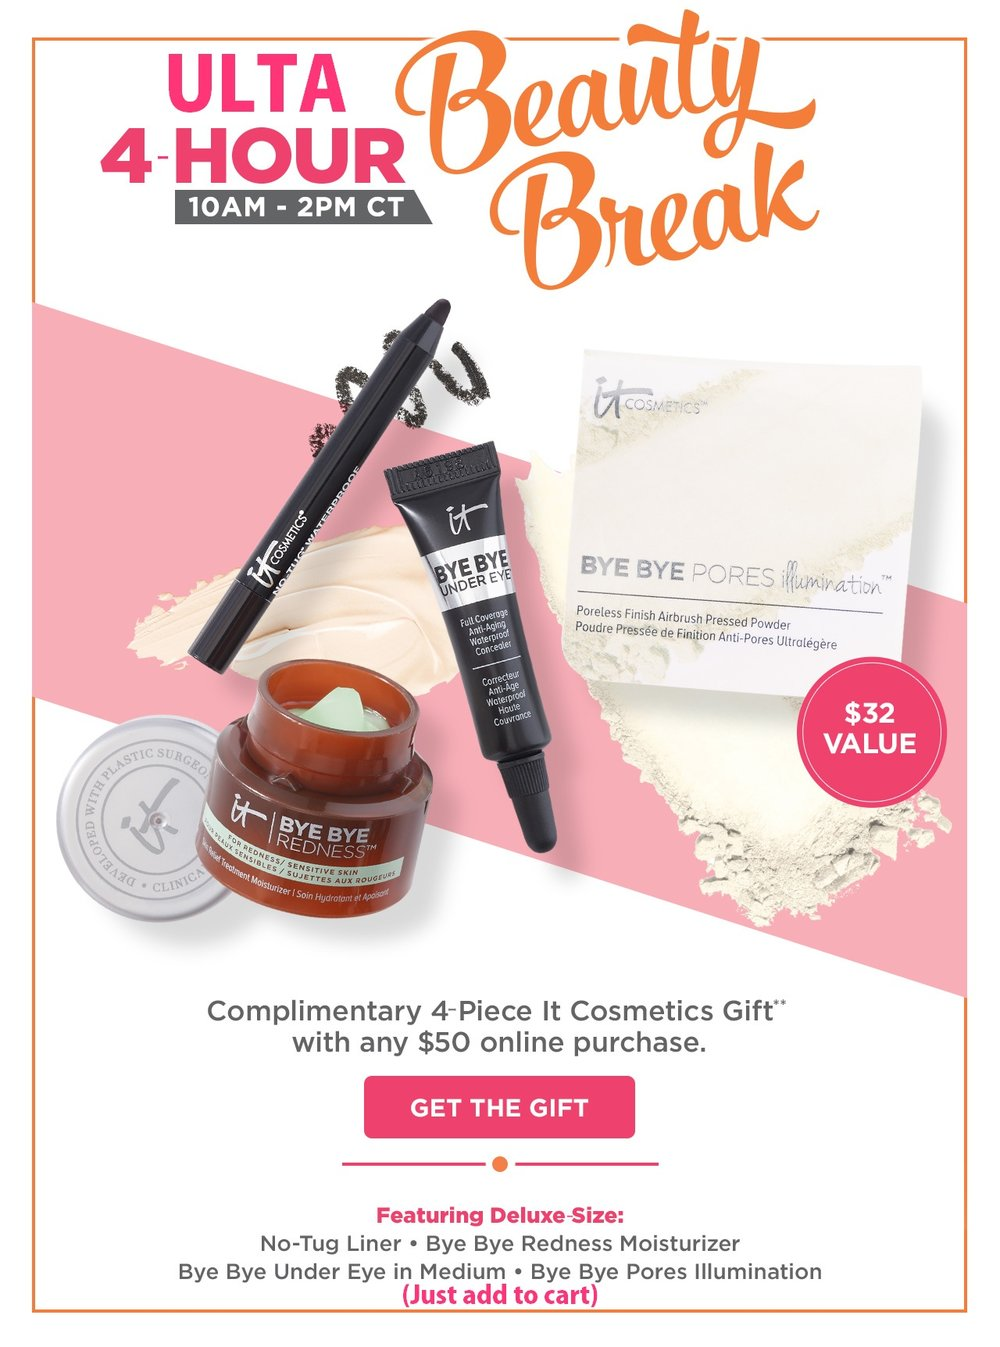 Ulta ~ Beauty Break ~  FREE 4-Piece IT Cosmetics Gift with any $50 online purchase  (Just add to cart) + Free samples with every order + Free shipping with any $50 order  Plus check their  Sale Page  out!    Free 4-Piece IT Cosmetics Gift ($32 value) includes:  Bye Bye Redness Skin Relief Treatment Moisturizer Mini (0.237 oz)  Bye Bye Pores Illumination Poreless Finish Airbrush Pressed Powder Mini (0.08 oz)  Bye Bye Under Eye Full Coverage Anti-Aging Waterproof Concealer Mini in Medium  No Tug Waterproof Gel Eyeliner Sample in Black Brown (0.012 oz)